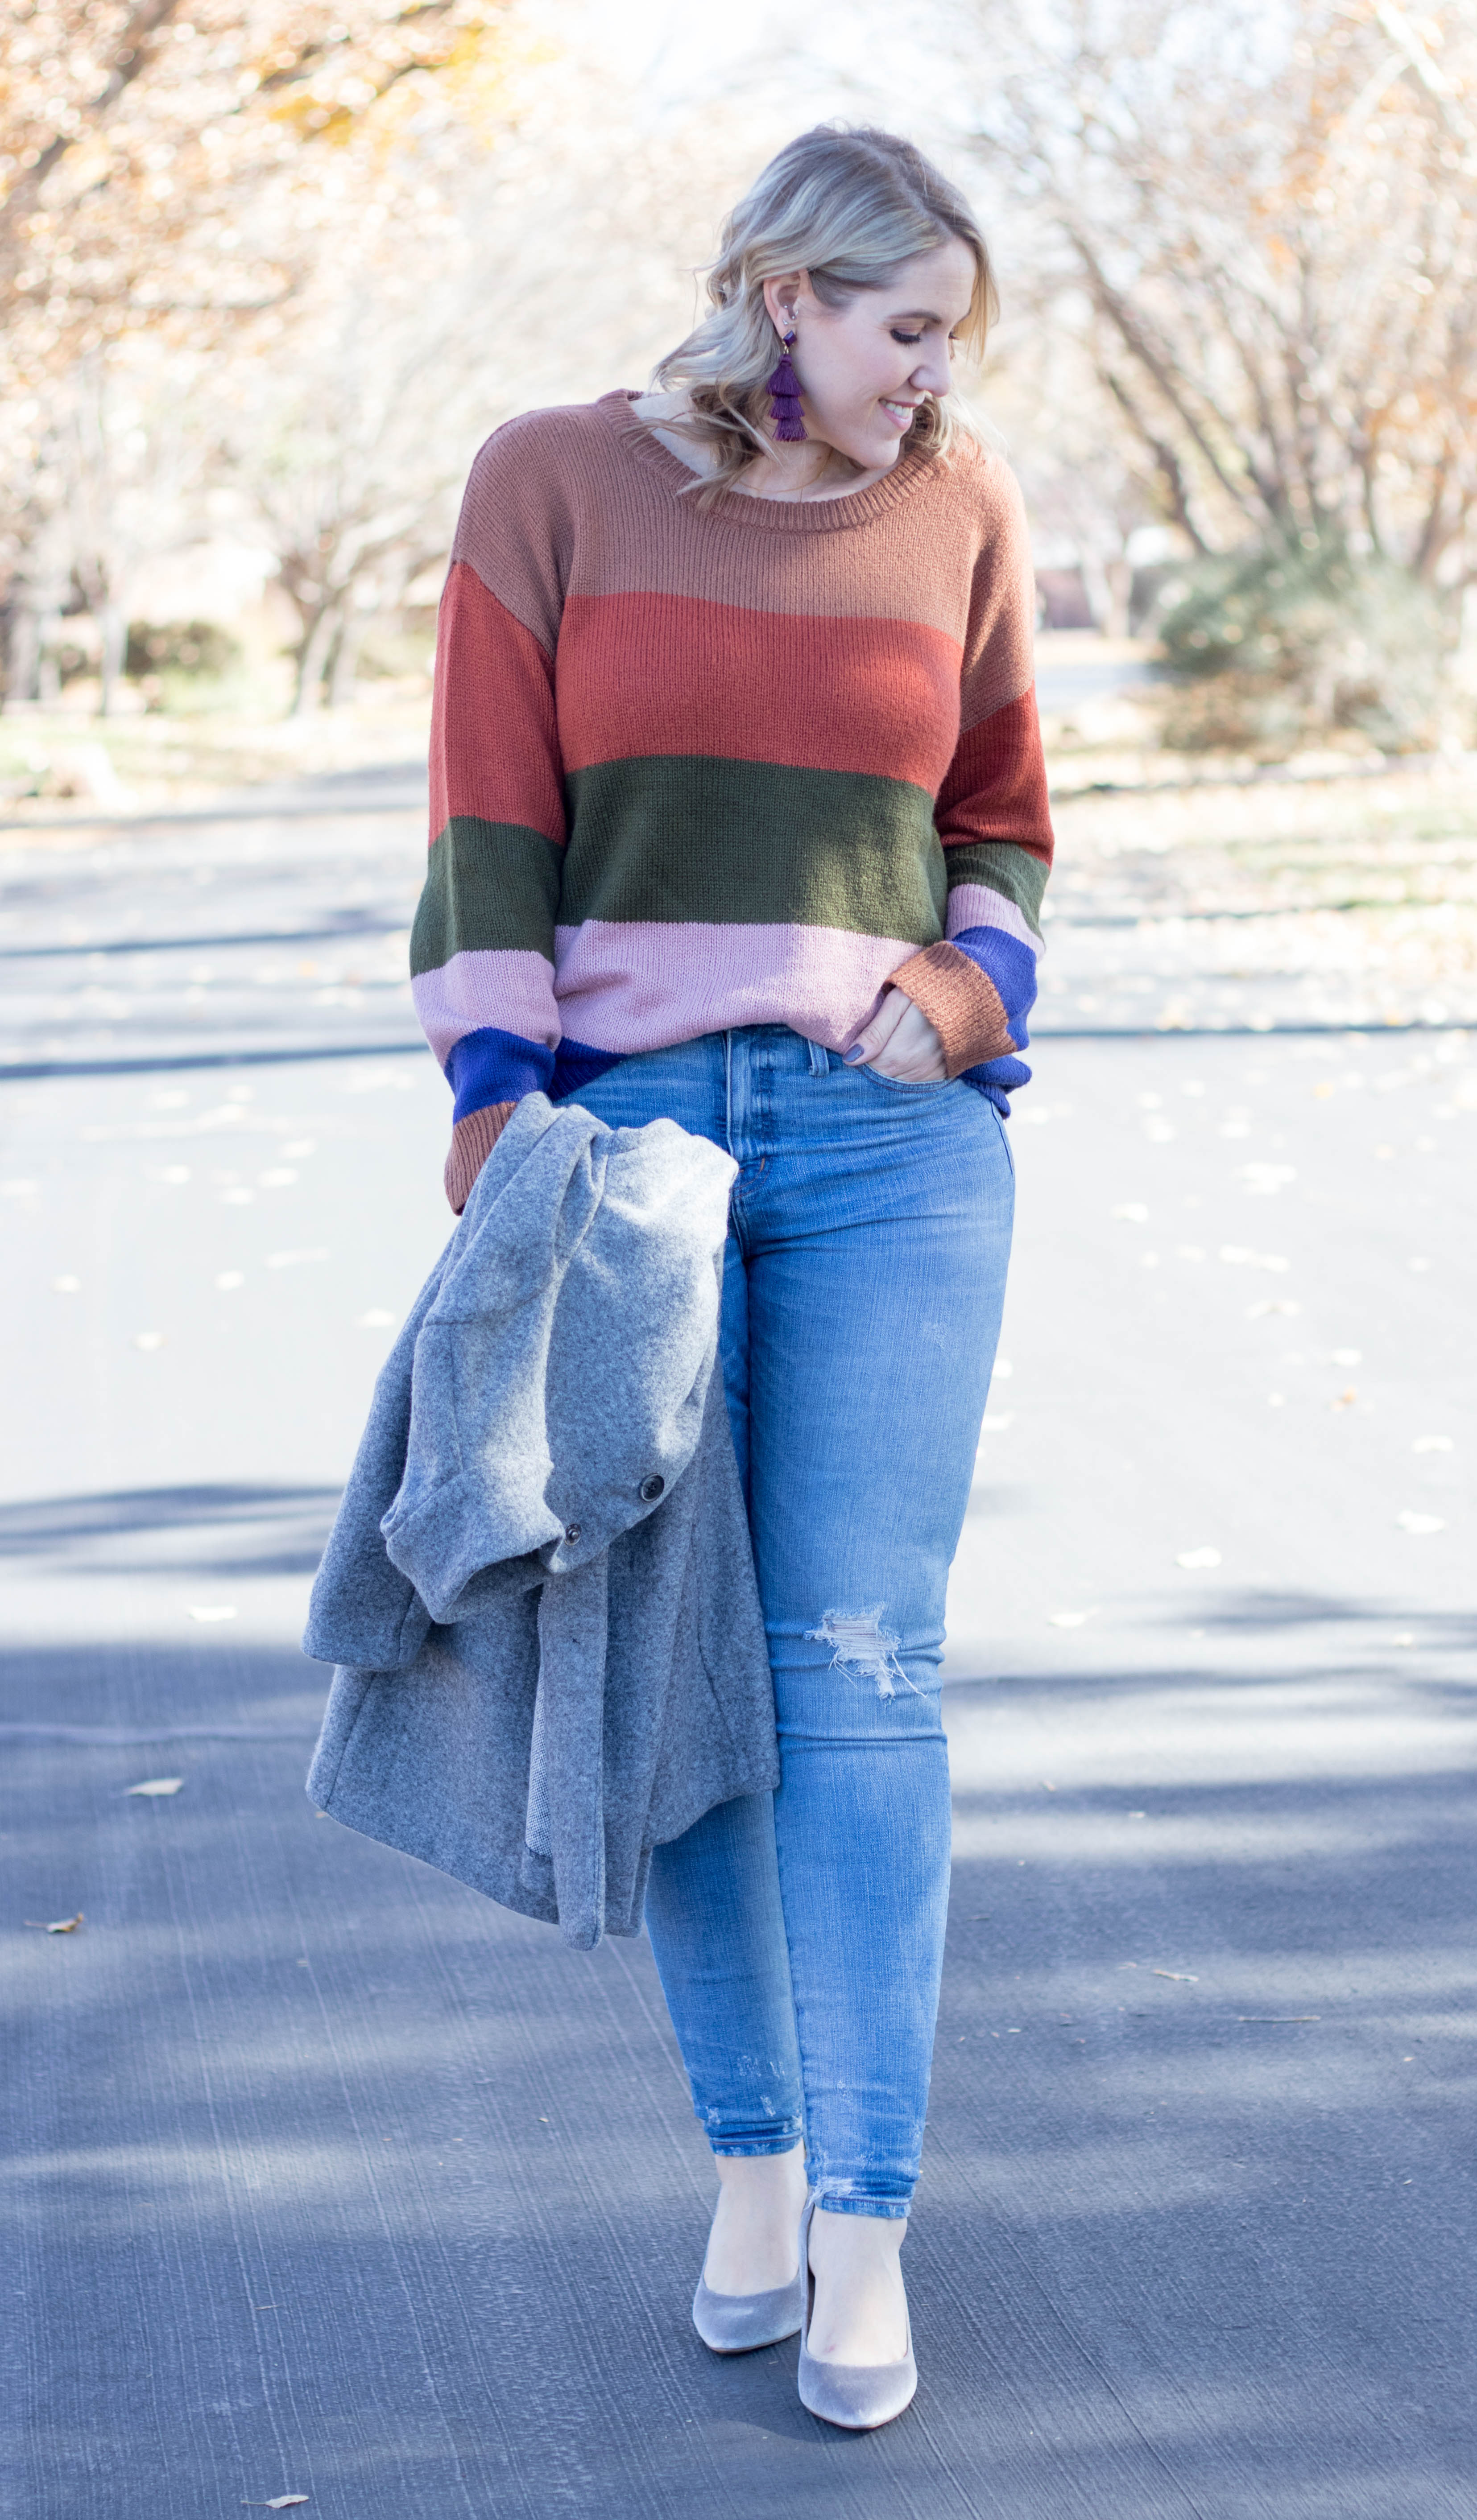 how to style a striped sweater for winter #winterfashion #tallfashion #madewell